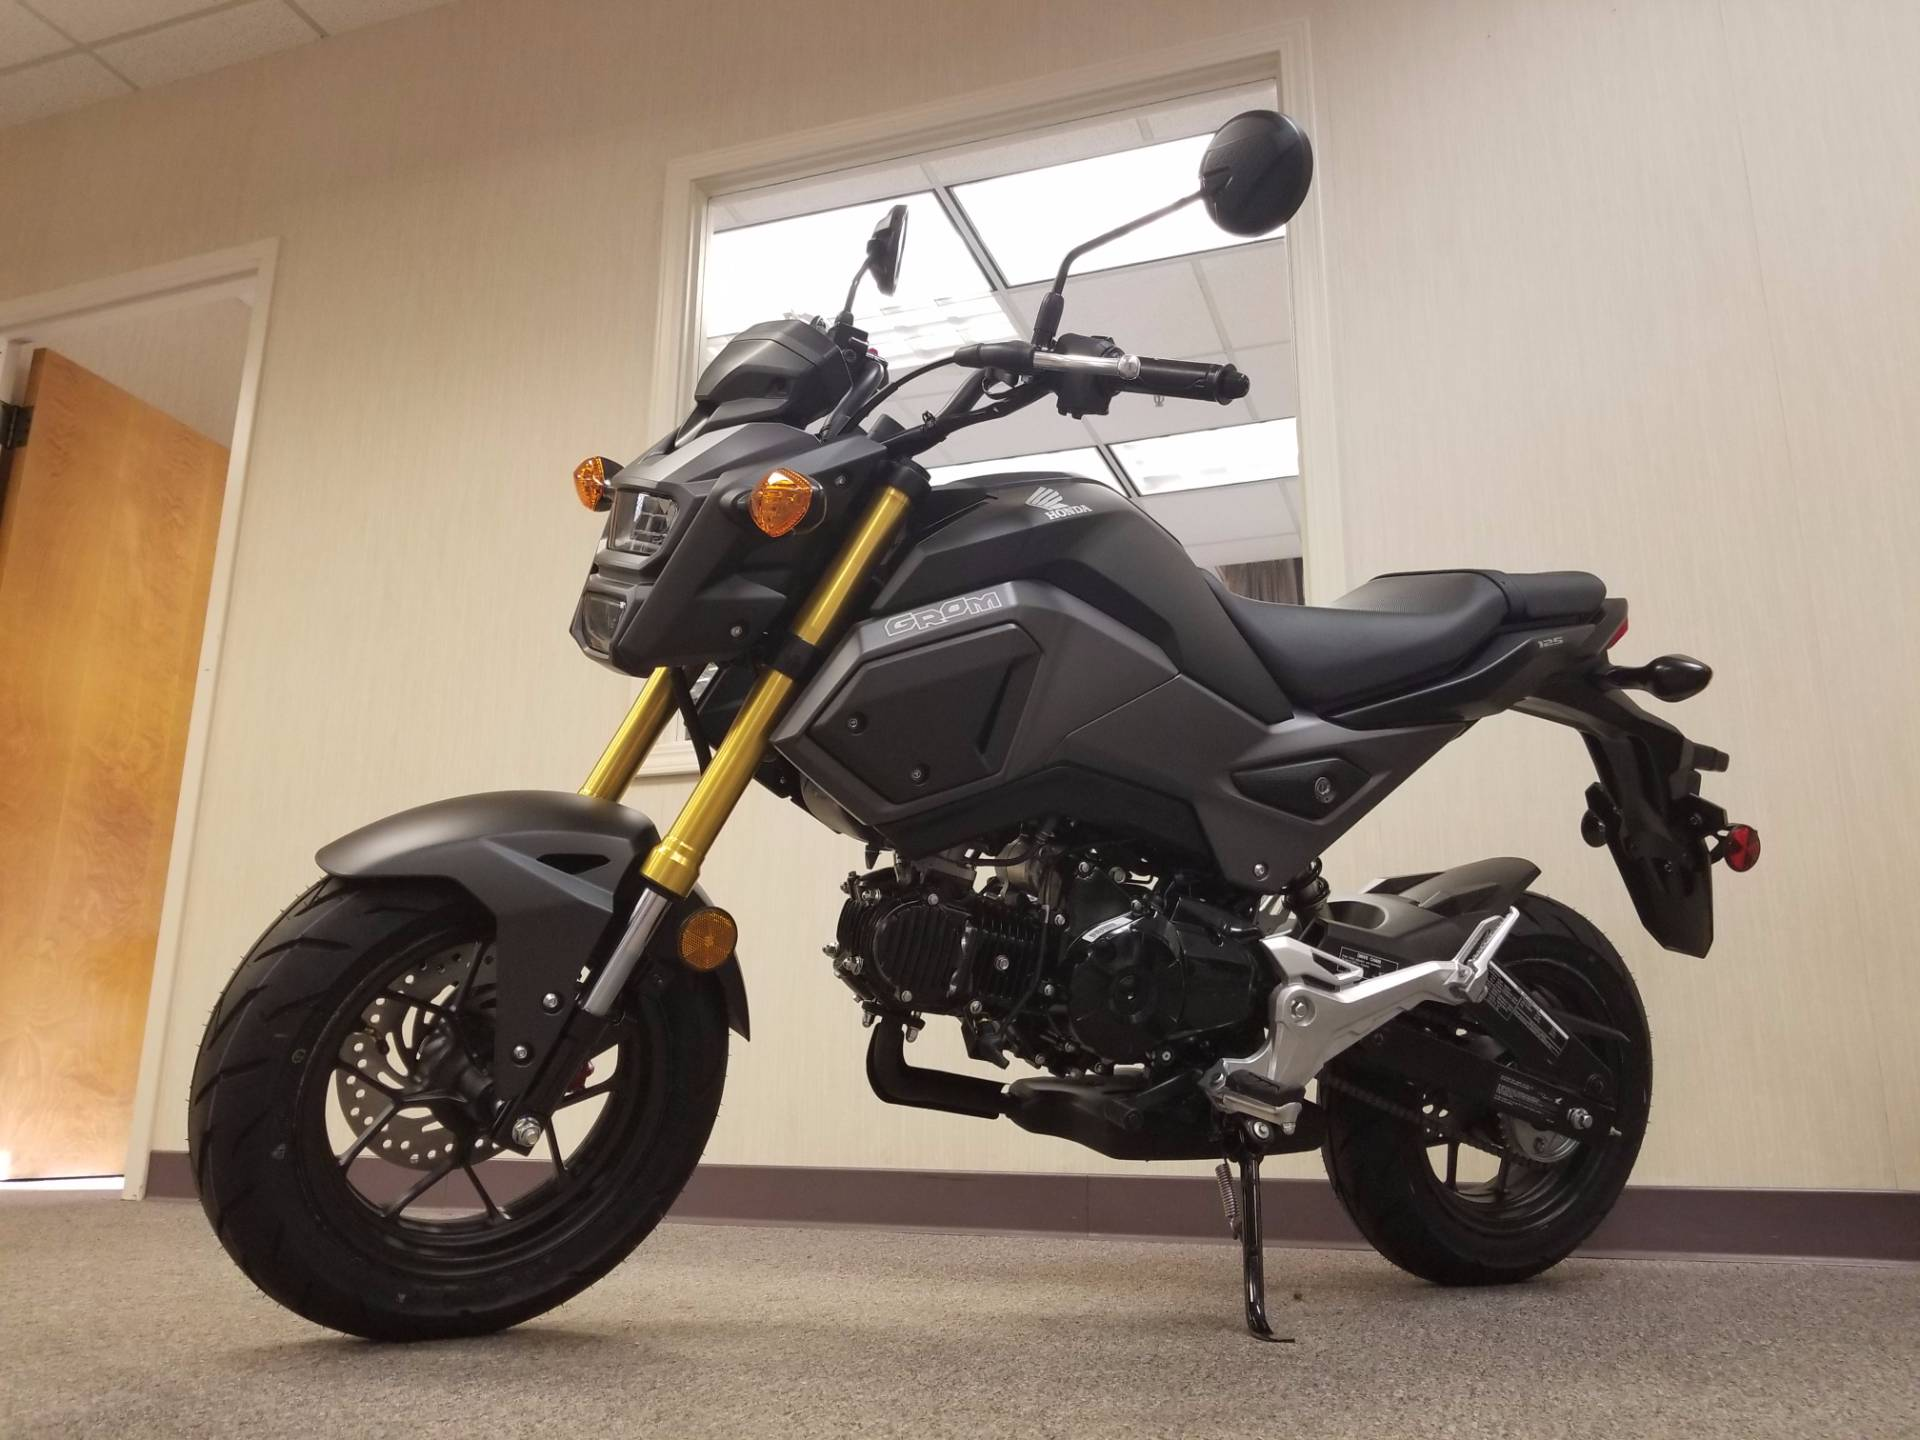 Honda Grom Price >> New 2018 Honda Grom Motorcycles in Statesville, NC | Stock Number: 002879 ...